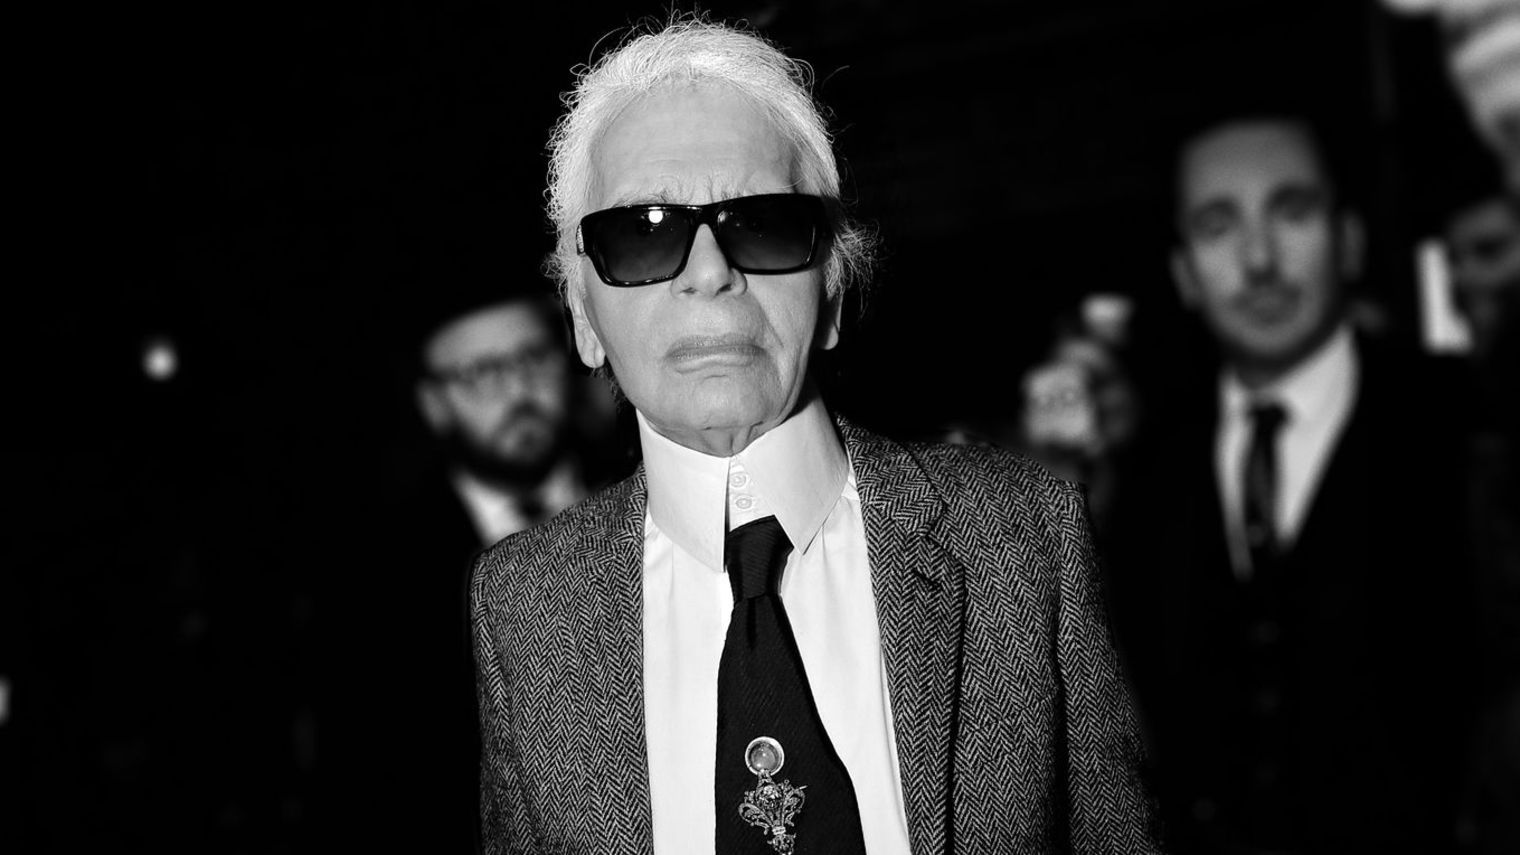 karl-lagerfeld-au-defile-chanel-metiers-d-art-paris-rome